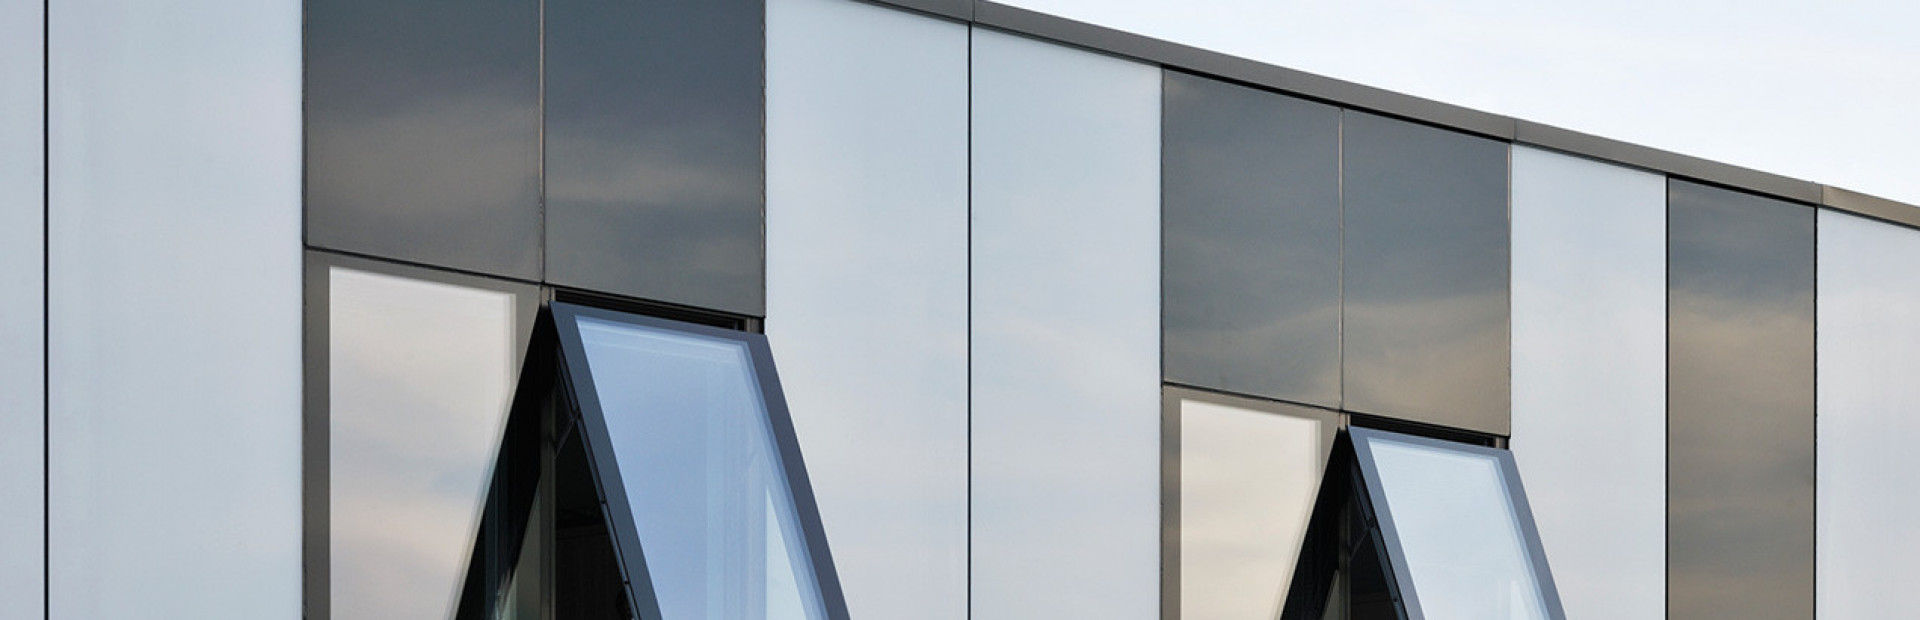 Q-Air System | Trimo building envelope solutions